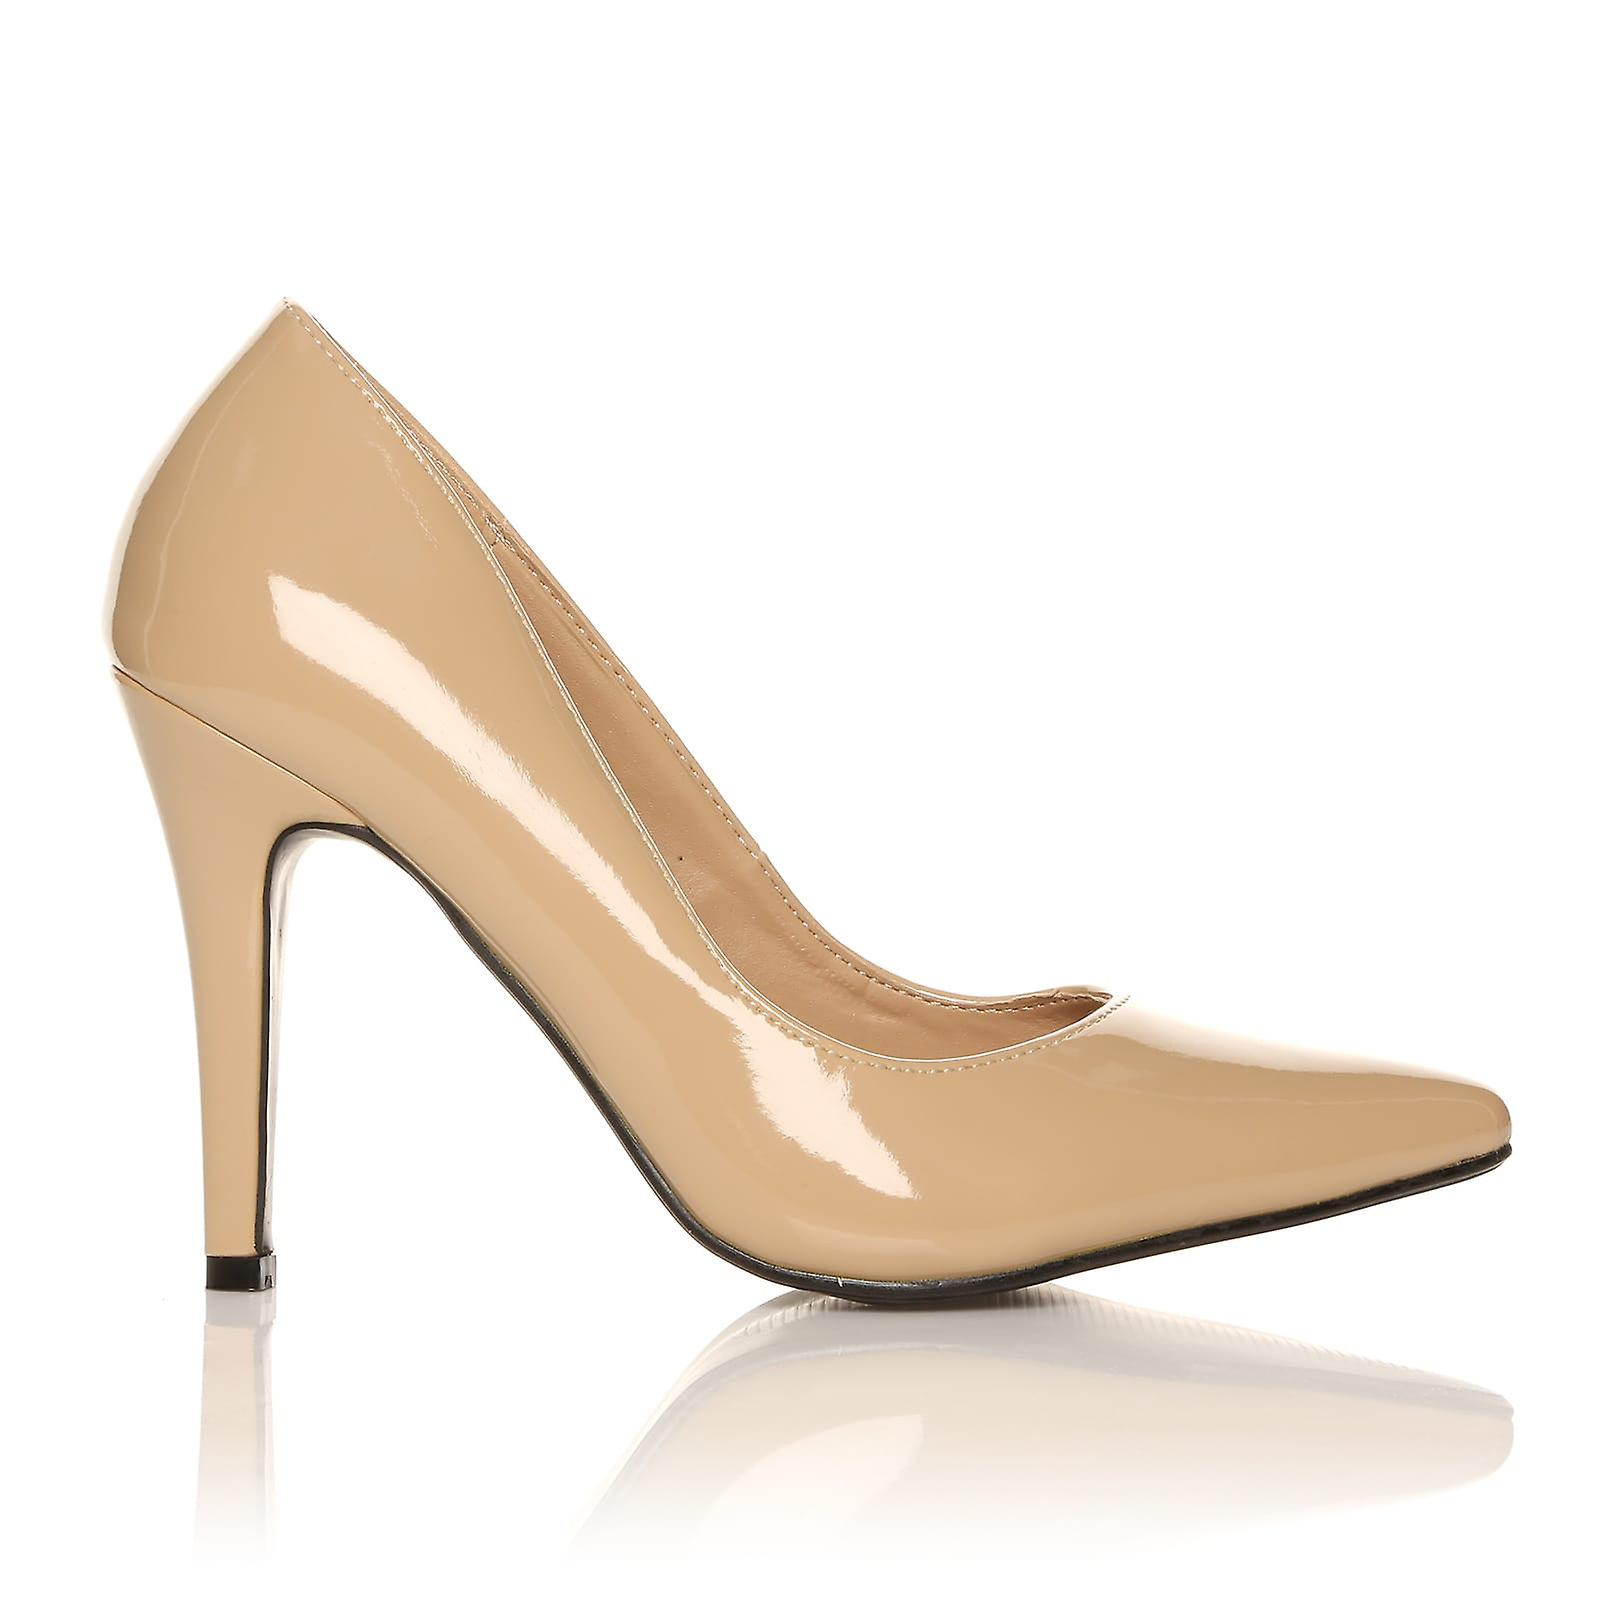 DARCY Nude Patent PU Leather Stilleto Shoes High Heel Pointed Court Shoes Stilleto ce7432